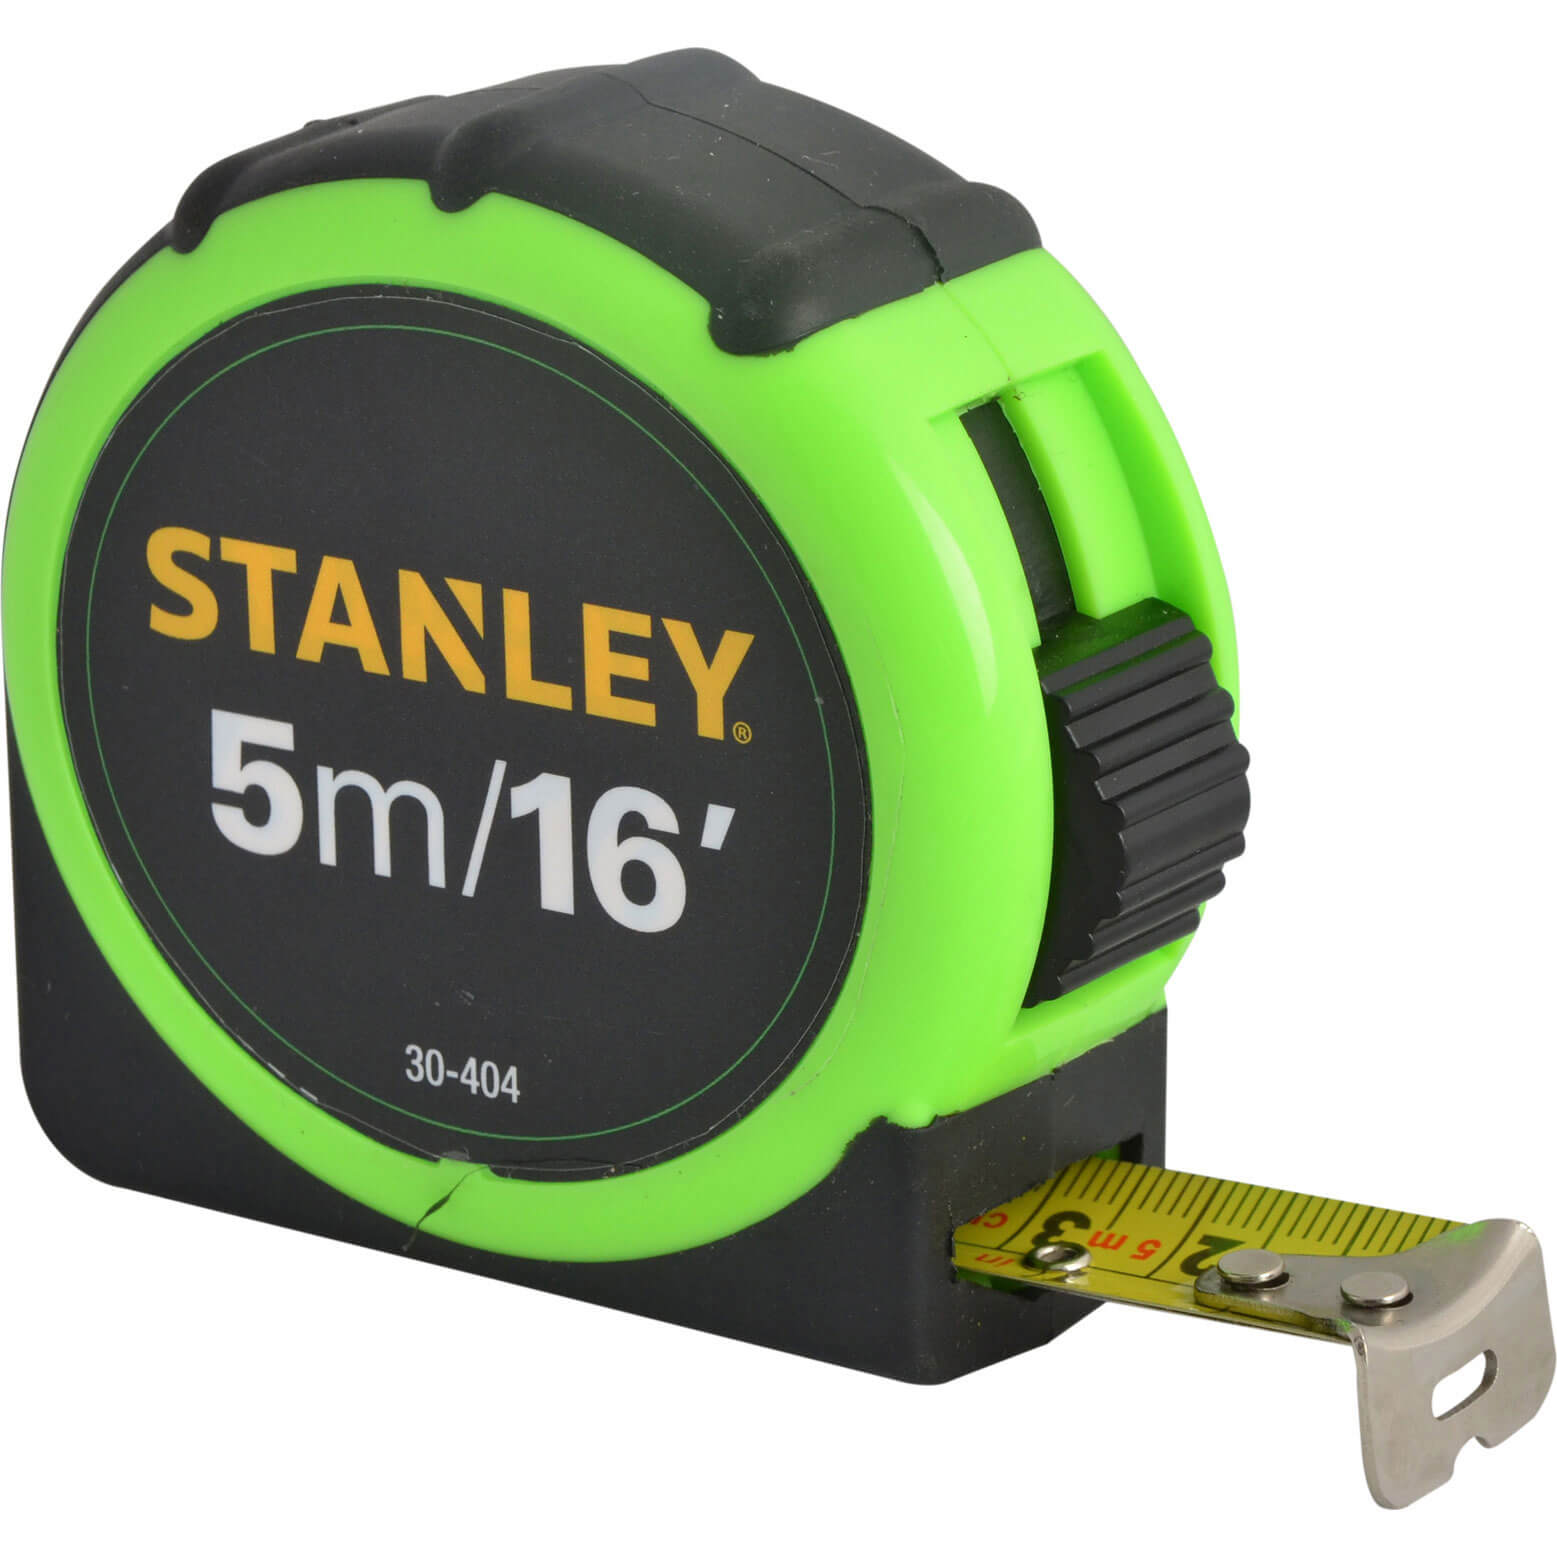 Buy Stanley Counter Measuring Wheel Shop Every Store On The Tape Basic 5m 16 High Vis Measure